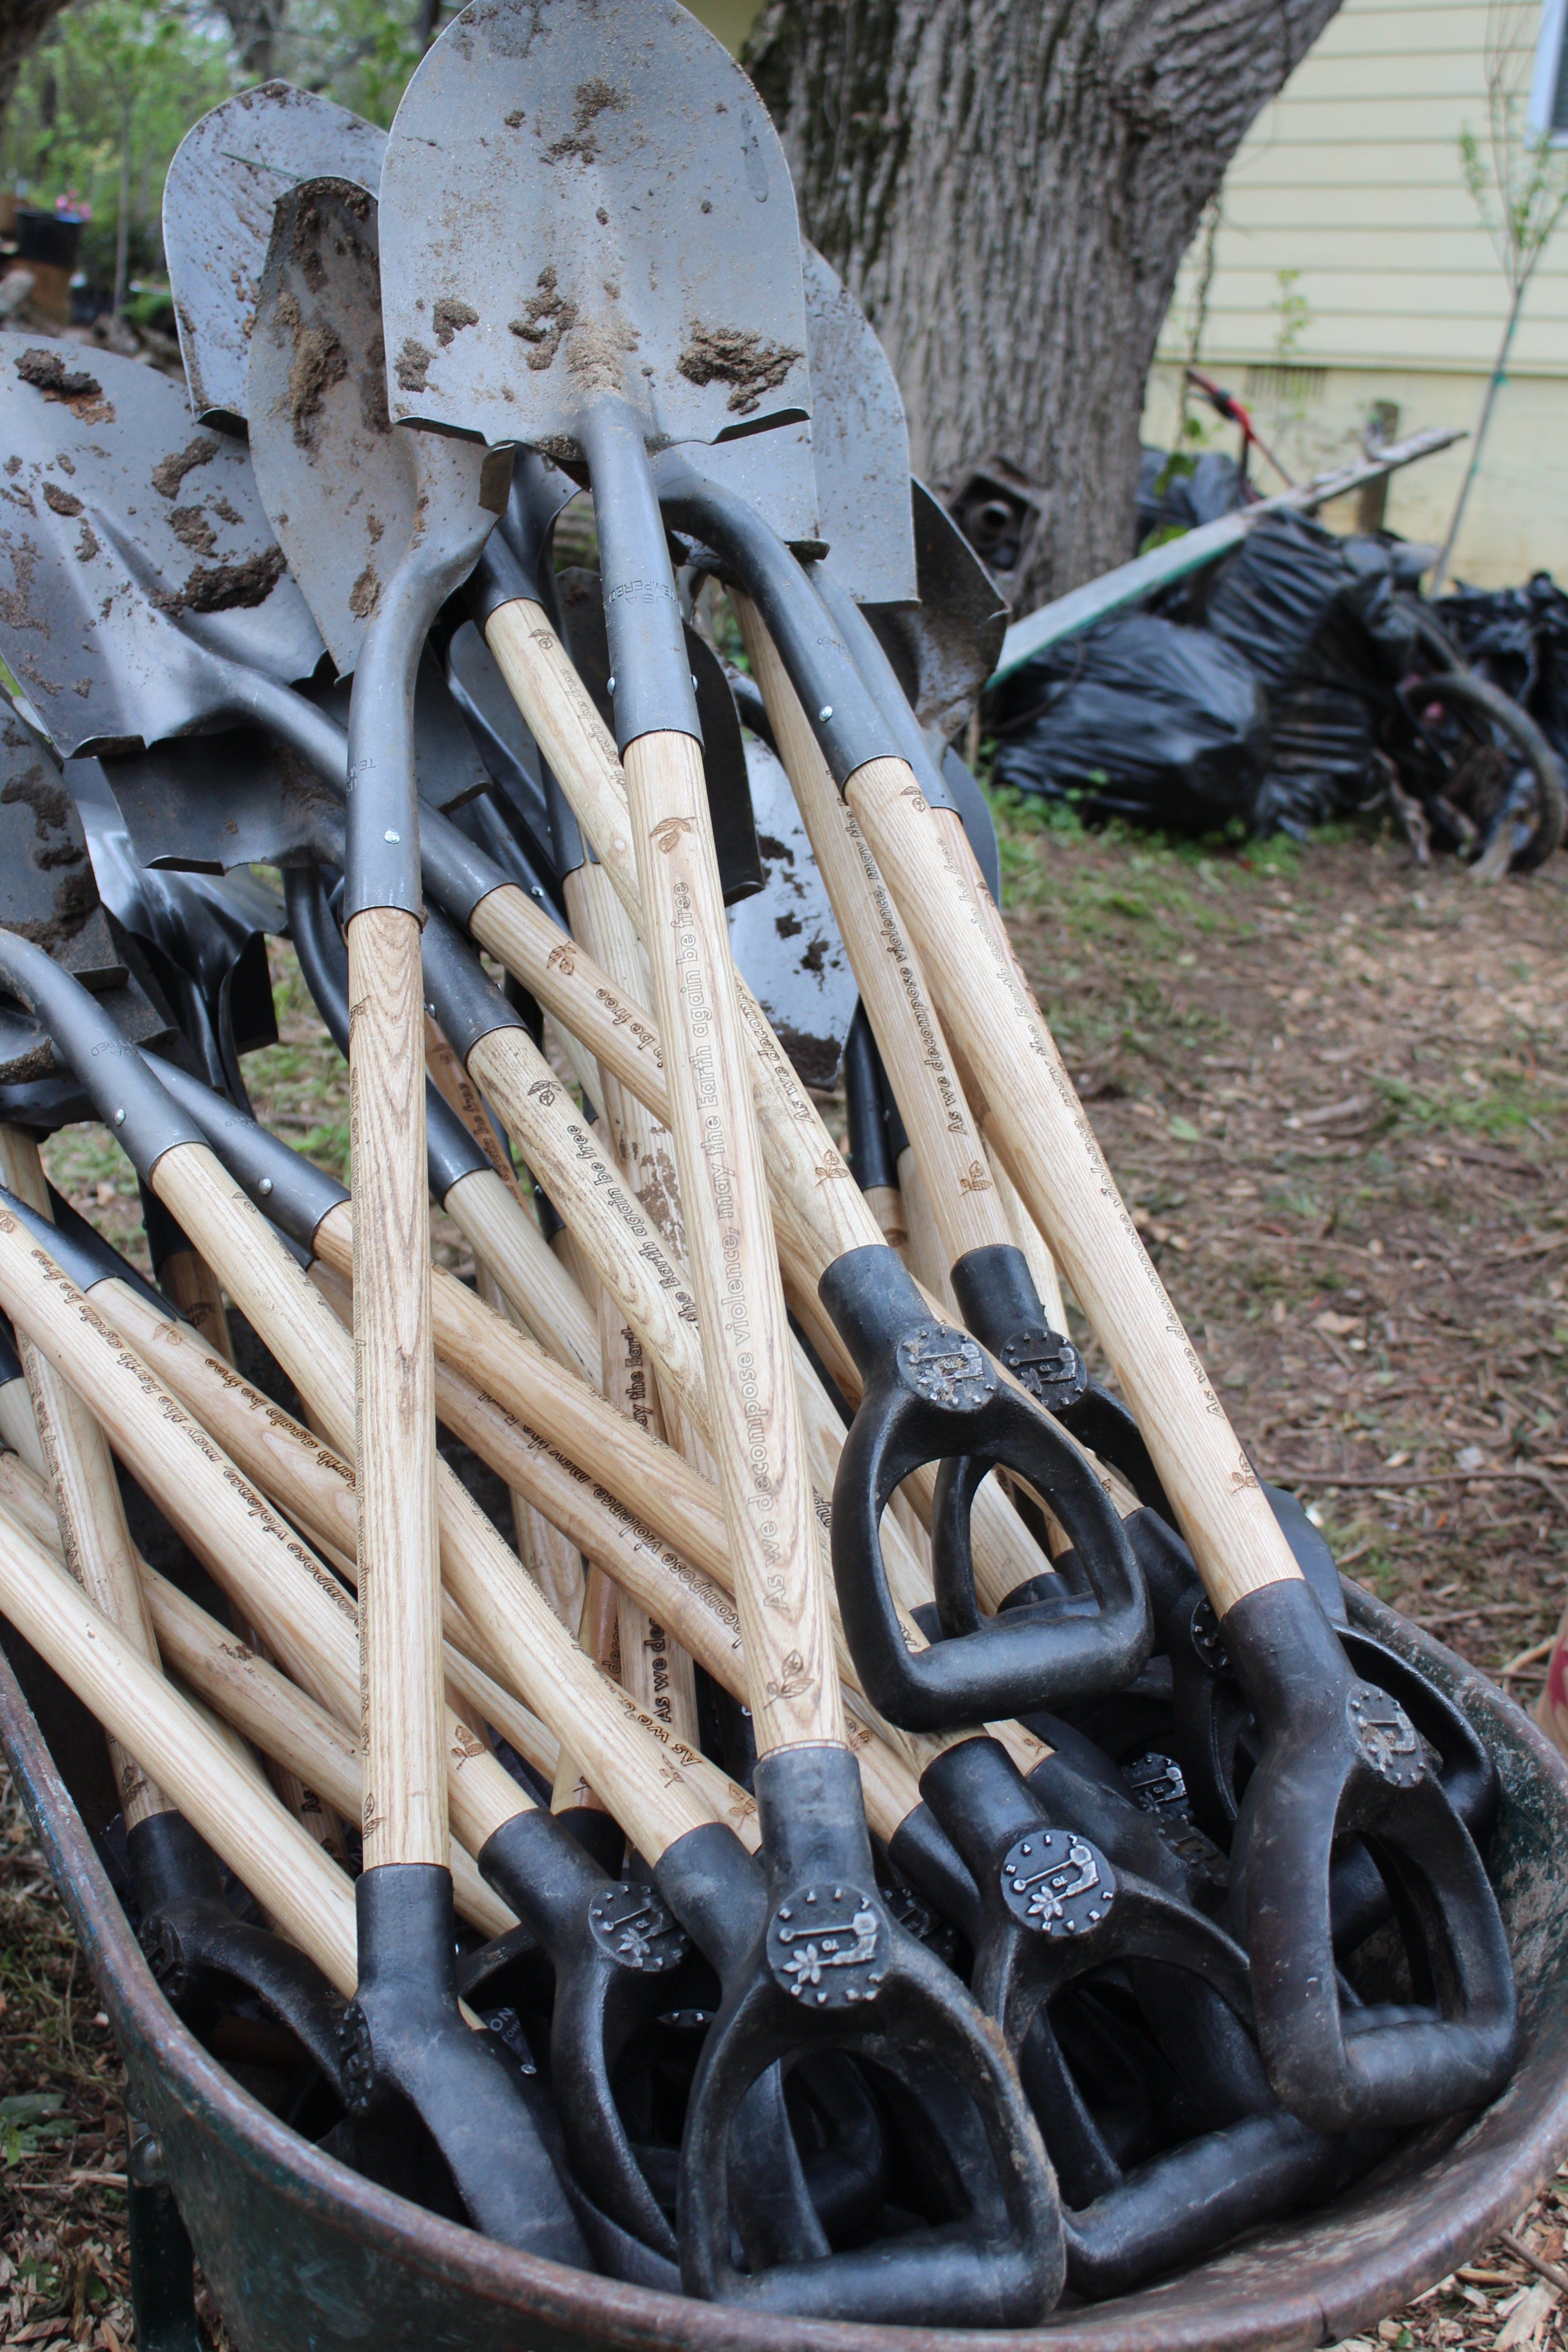 Lead to Life's shovels during a garden action day in Atlanta over the weekend. The tools feature inscriptions promoting nonviolence and handles made from an iron alloy that includes metal from melted guns.